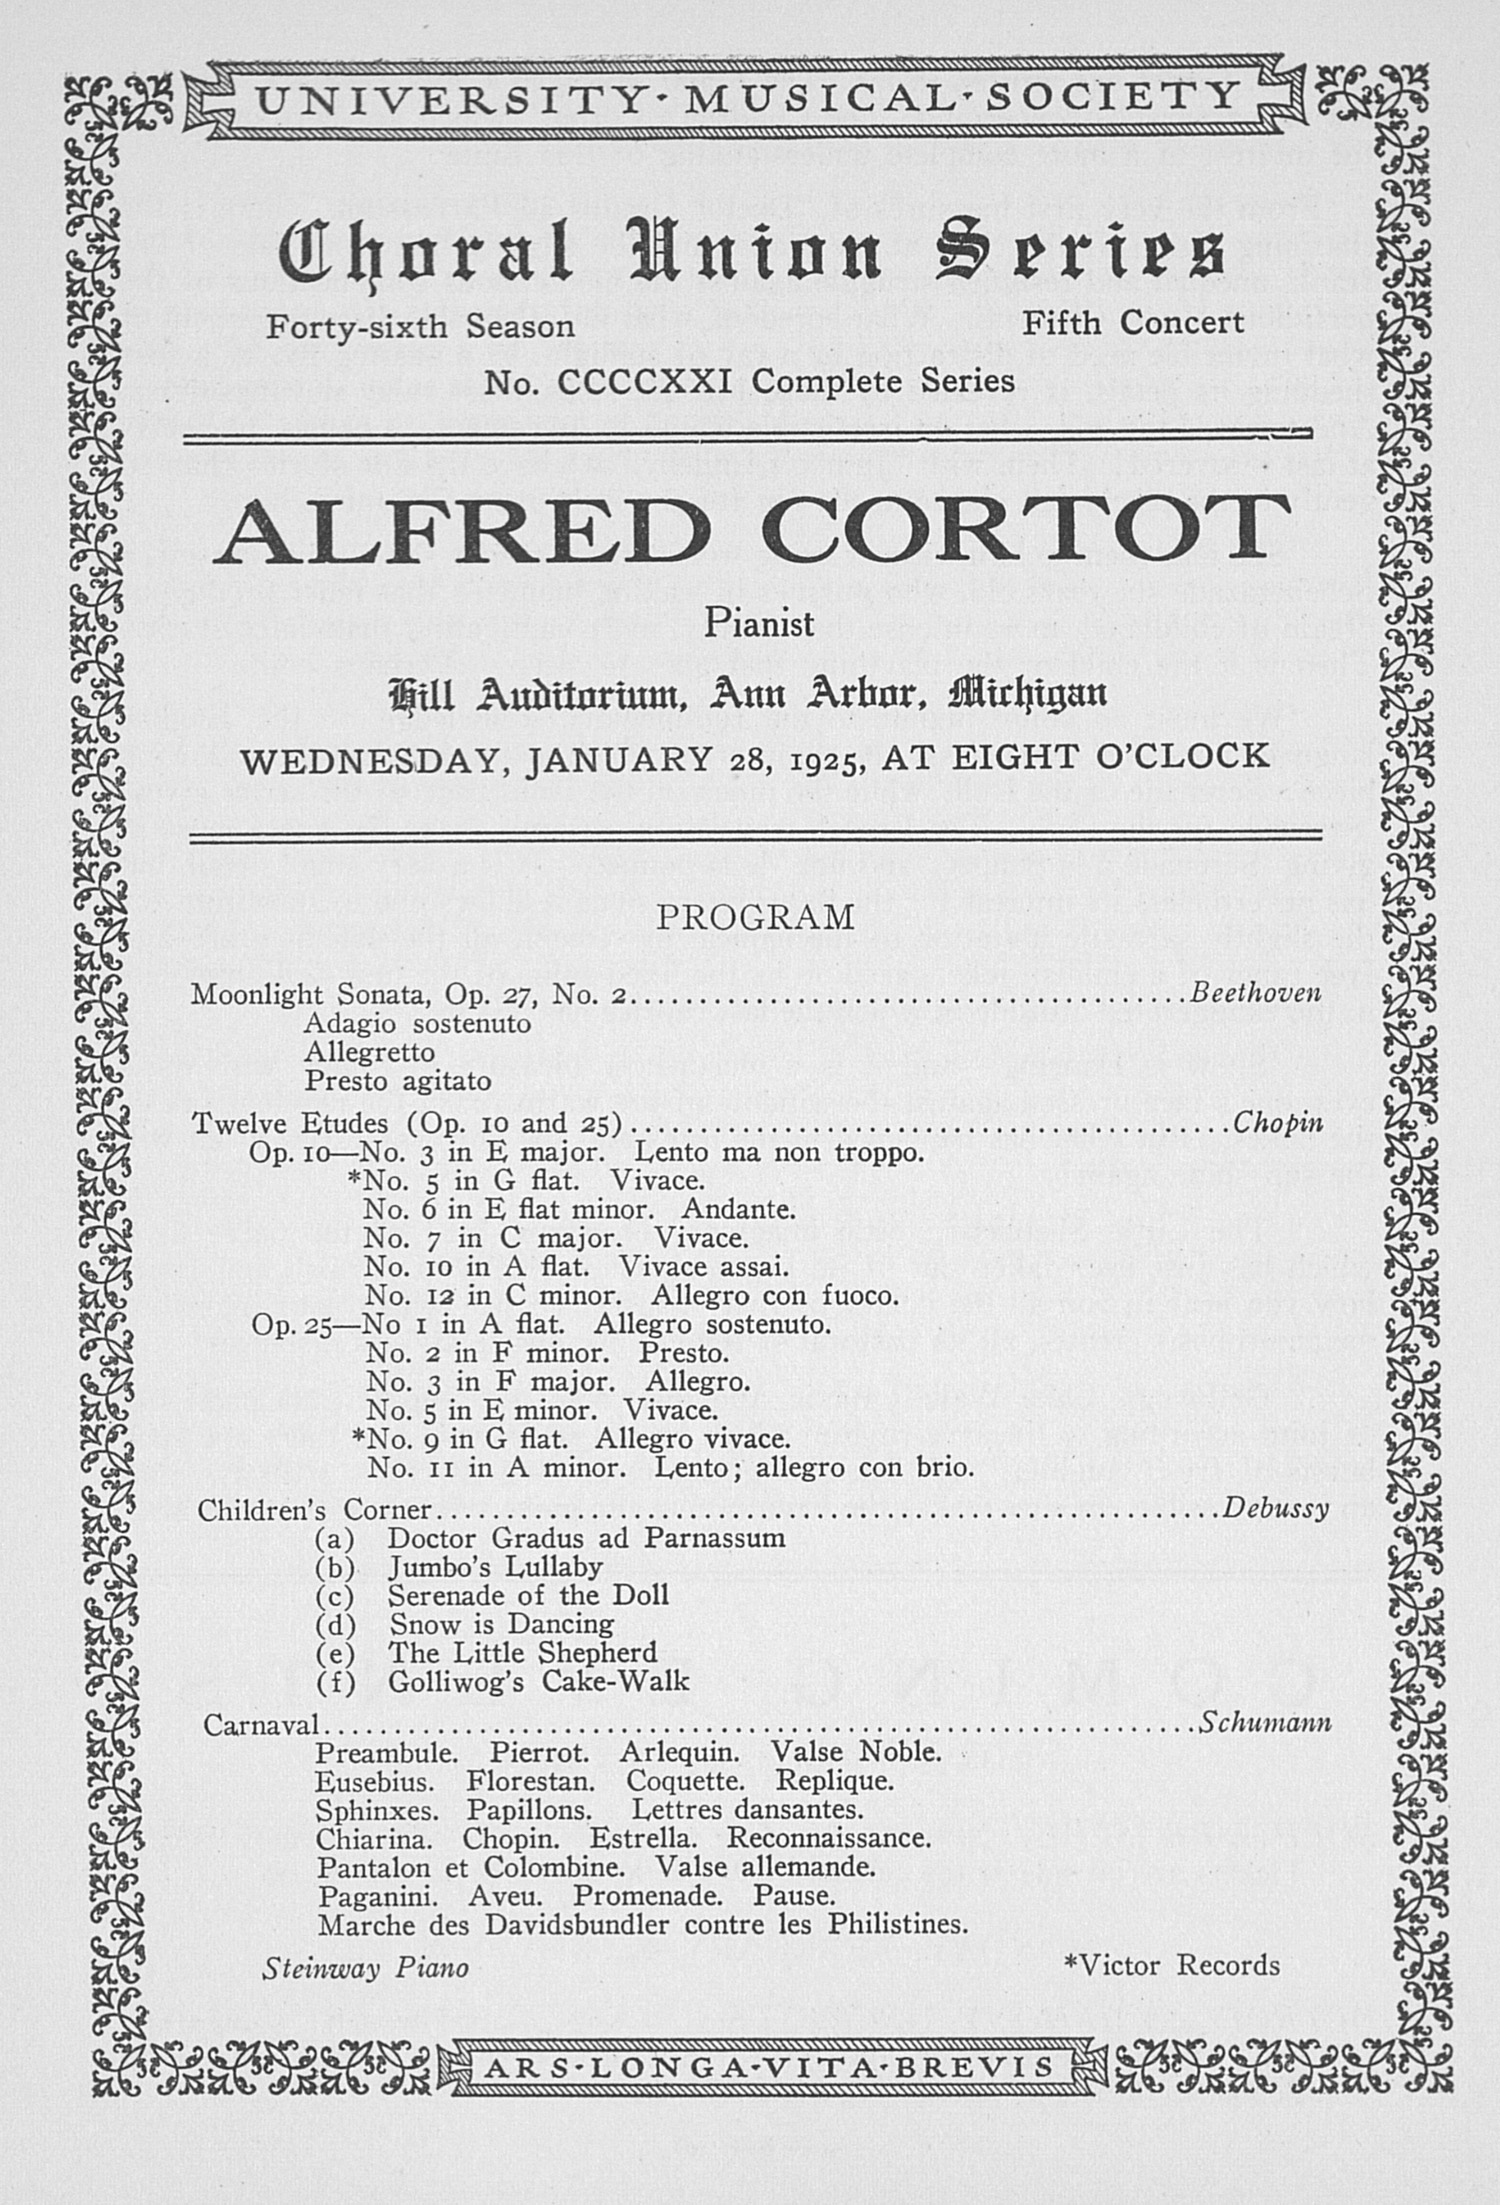 UMS Concert Program, January 28, 1925: Choral Union Series -- Alfred Cortot image